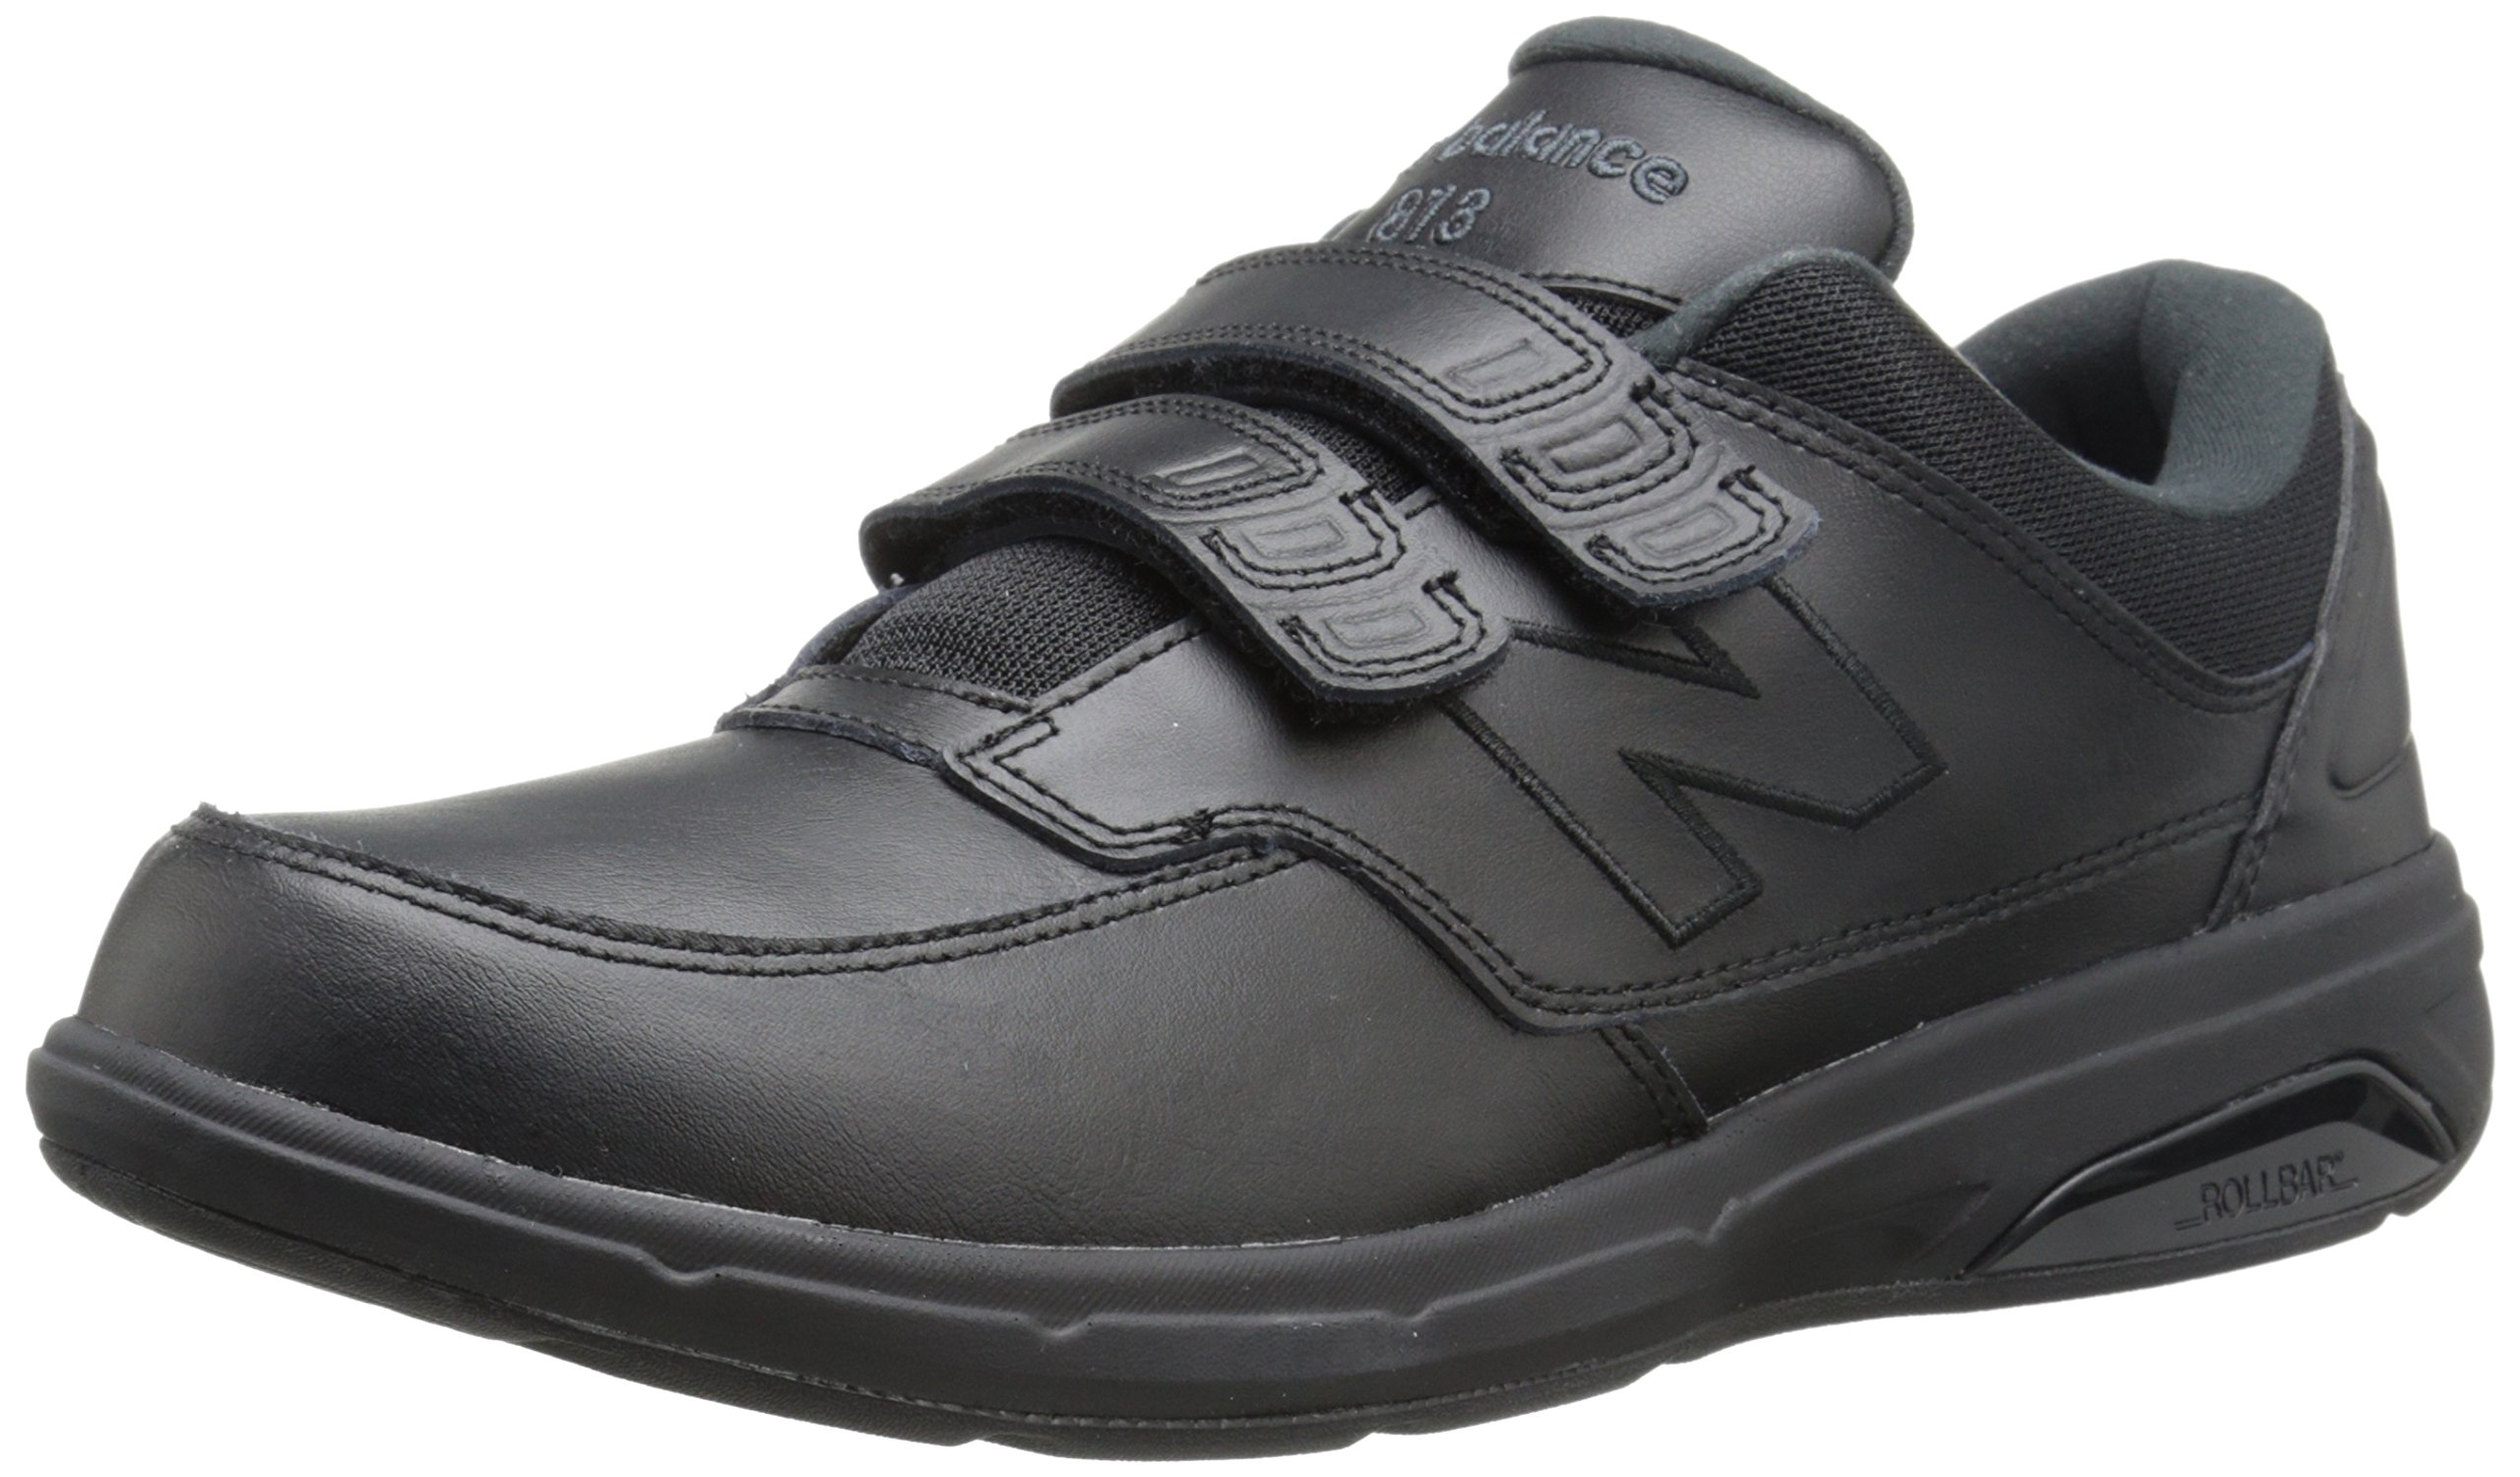 New Balance Men's MW813V1 Hook and Loop Walking Shoe, Black, 10.5 4E US by New Balance